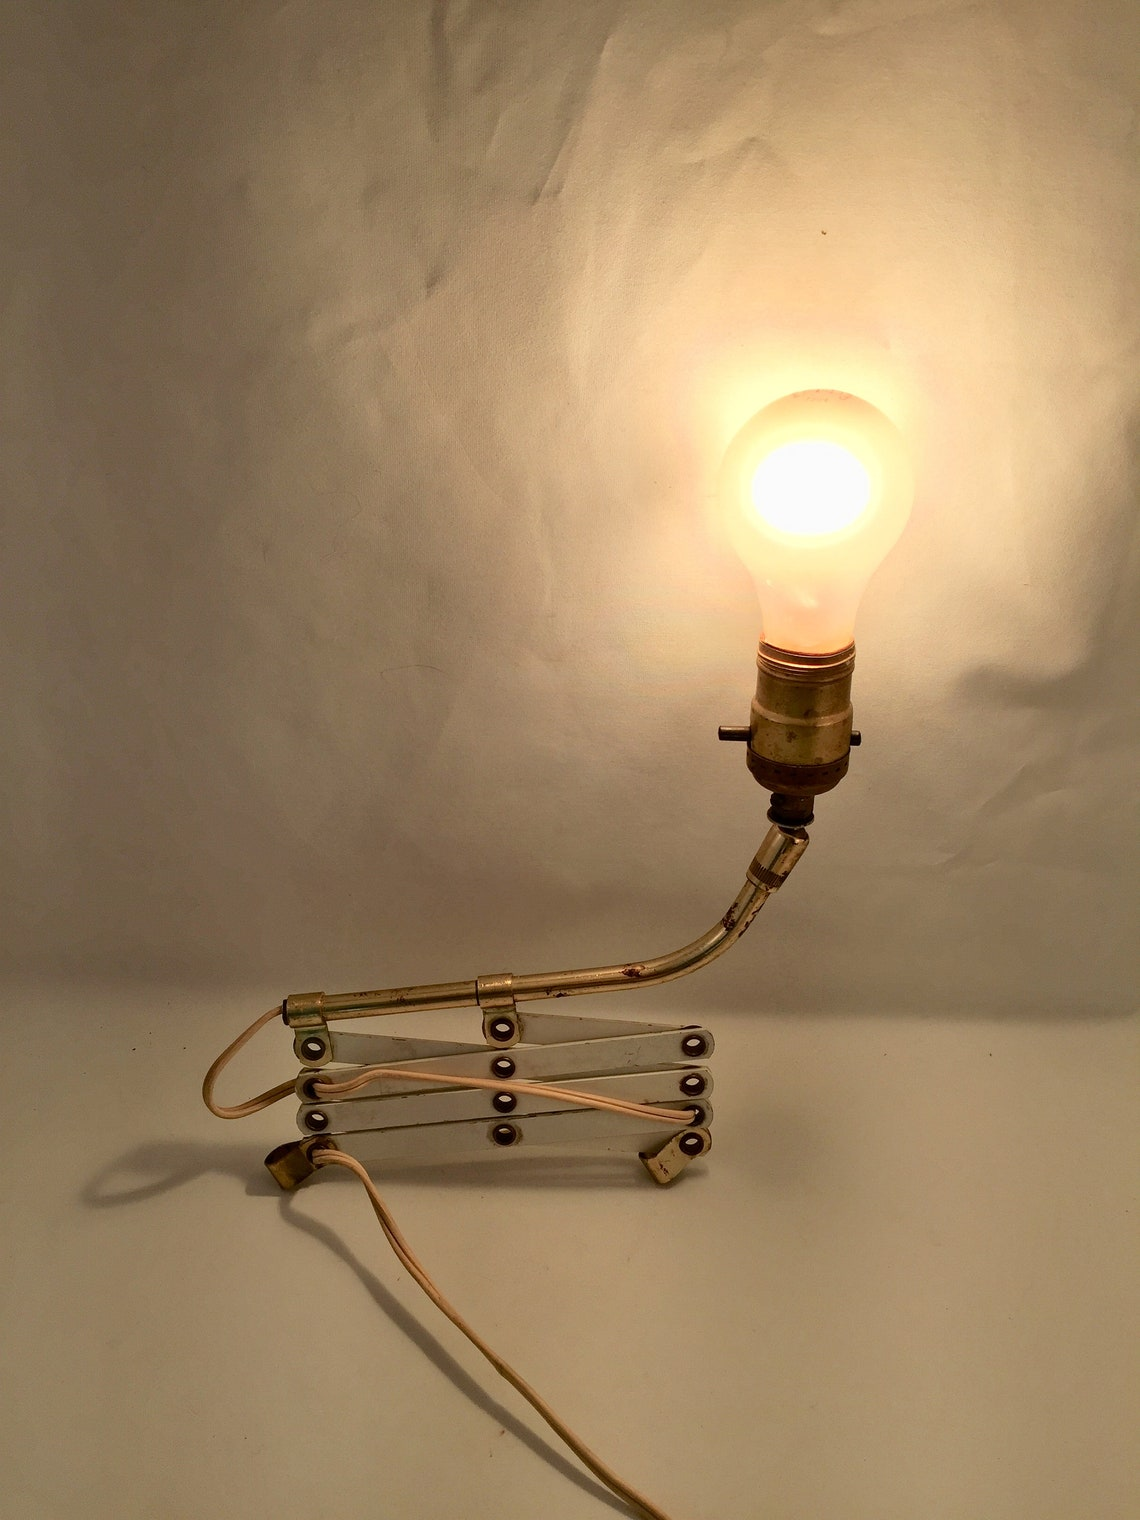 Vintage Expandable Wall Mount Light, White Metal Accordion Design with Brass Light Bar, Very Rustic in Working Order but Needs Some TLC - Eclairage